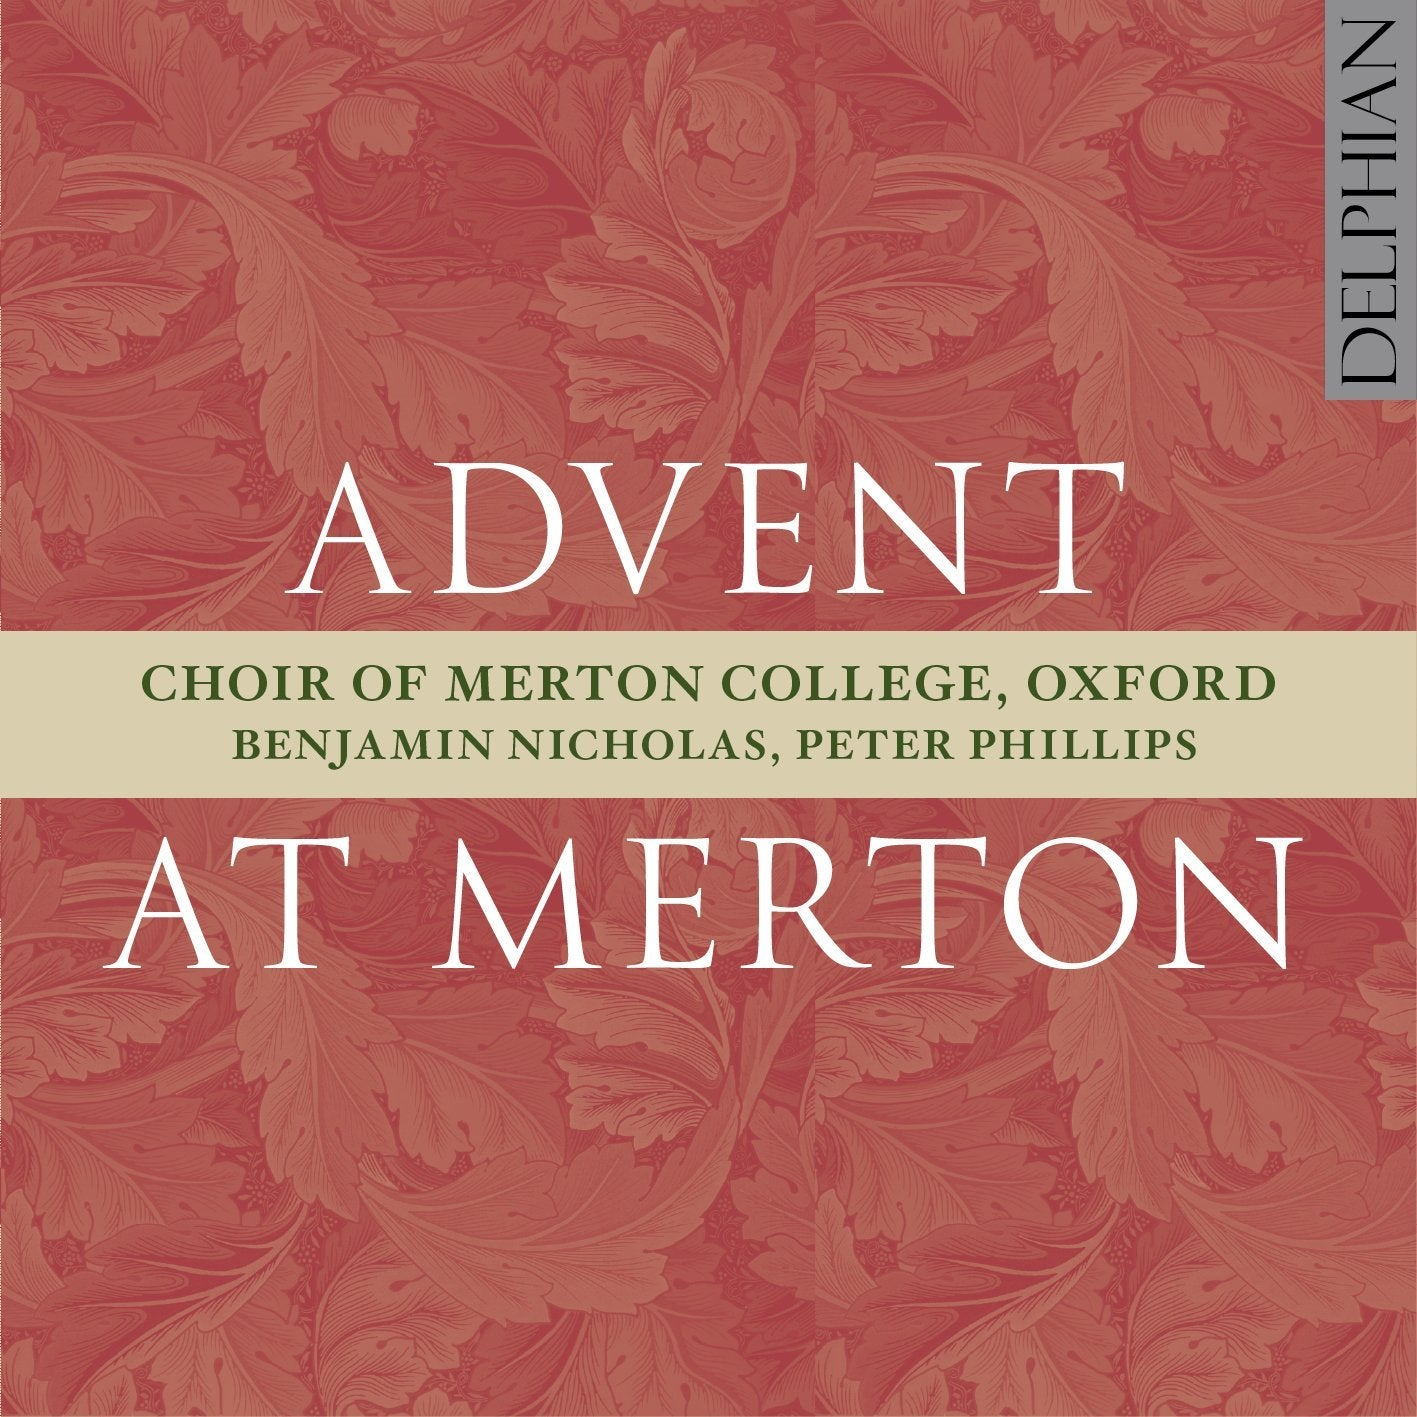 Advent at Merton CD Delphian Records